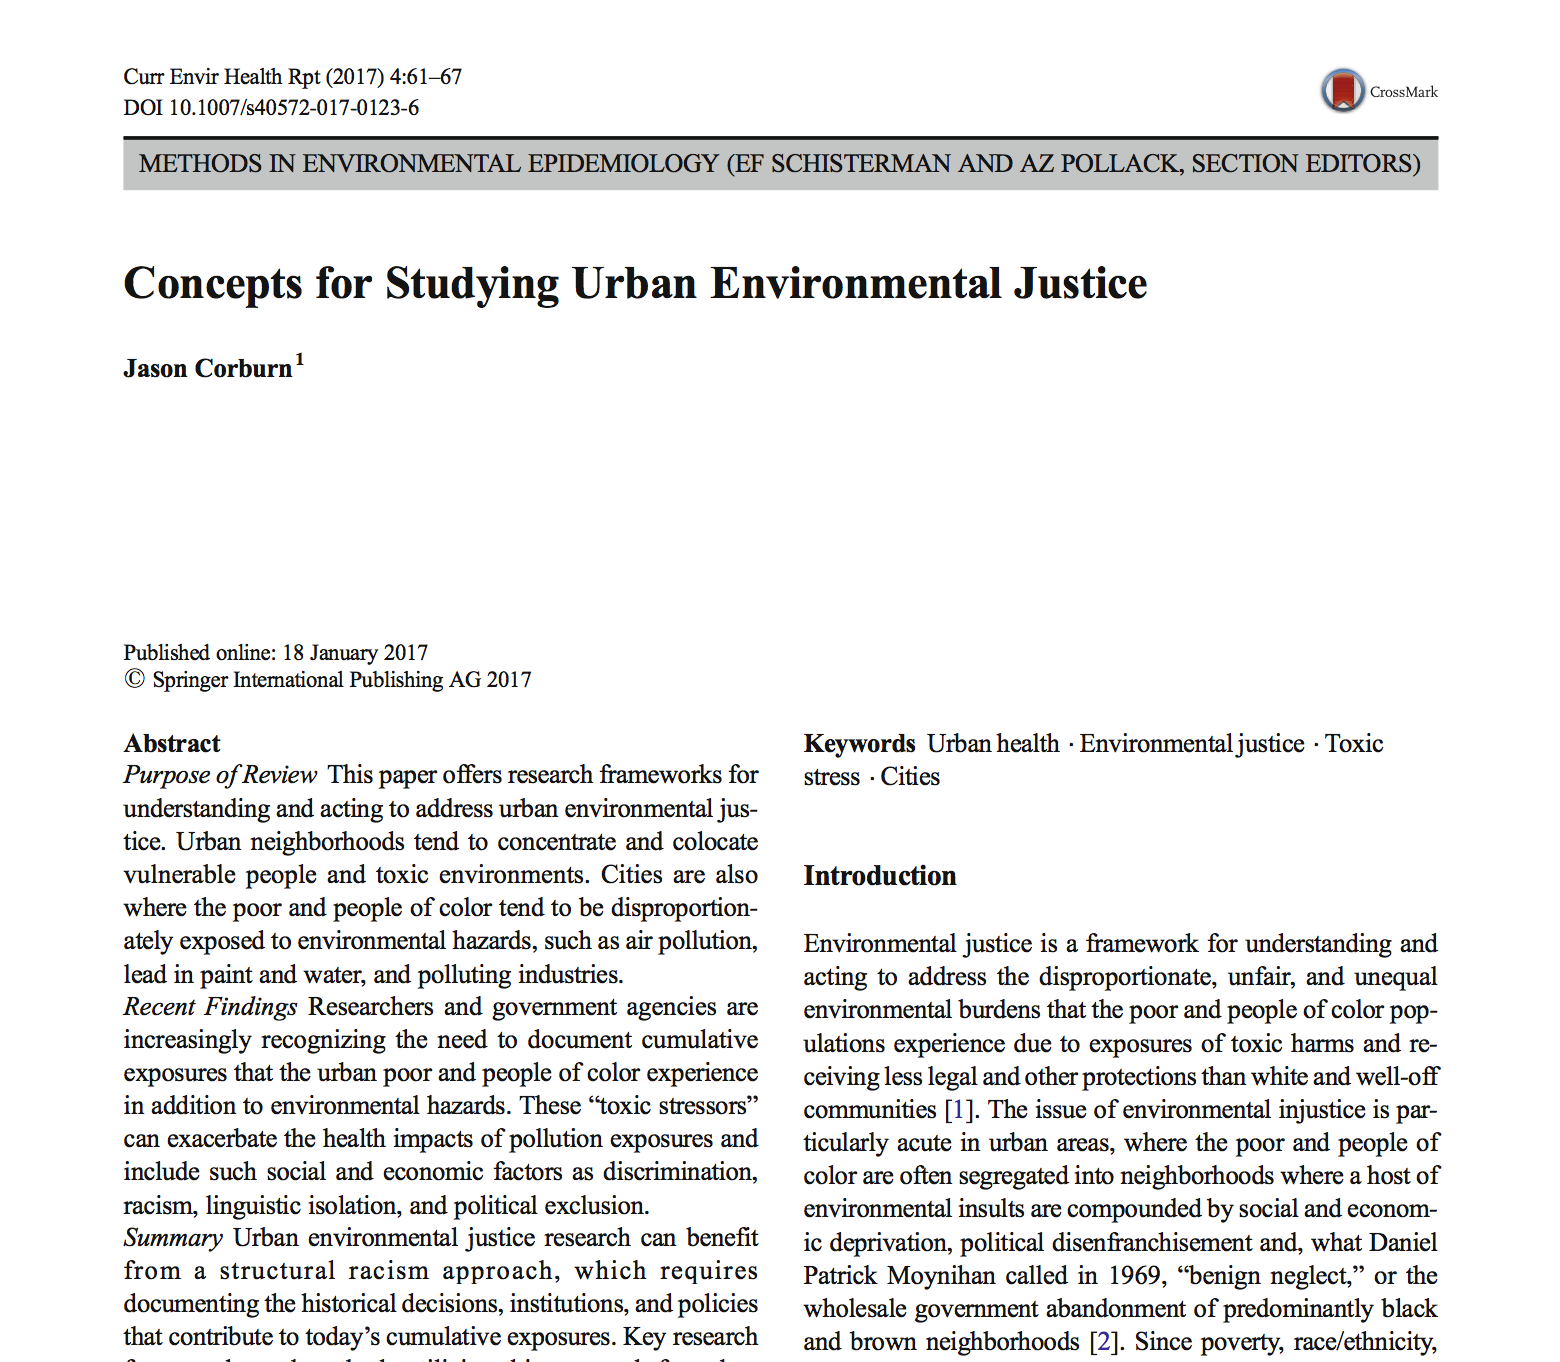 Concepts for Studying Urban Environmental Justice